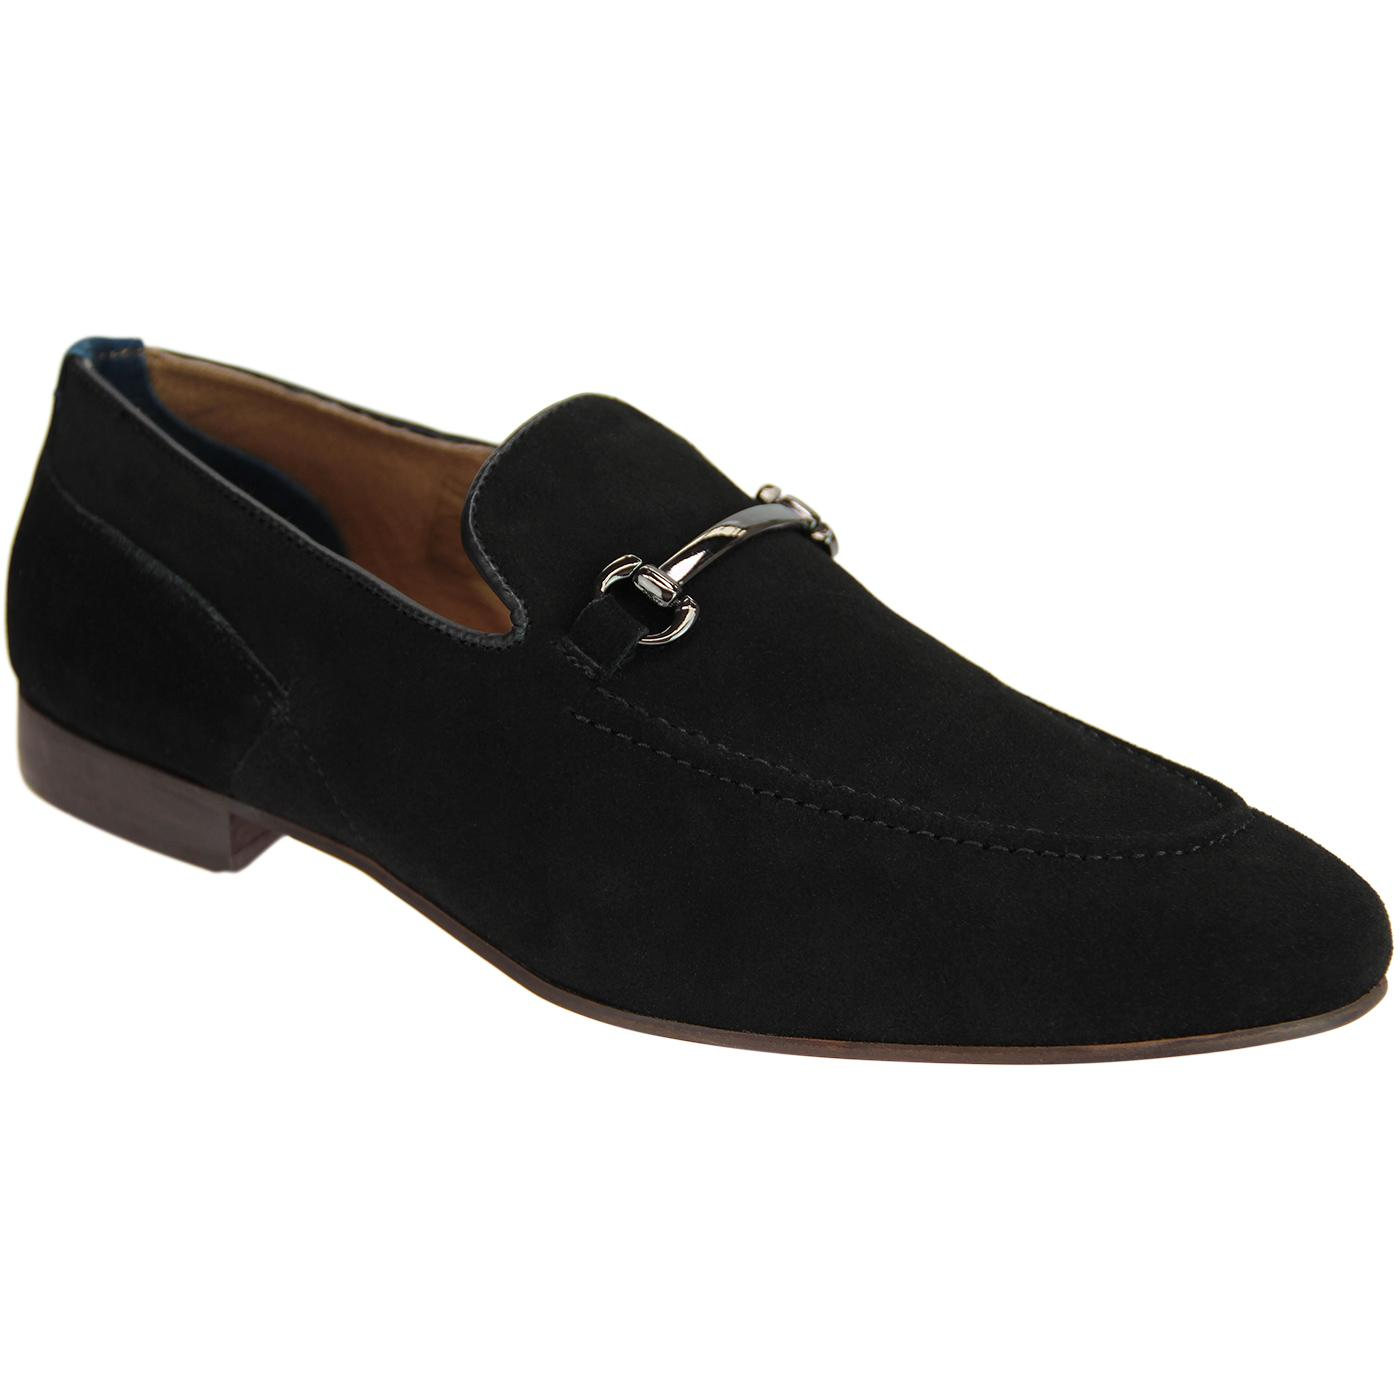 Banchory HUDSON Men's Retro Suede Loafers BLACK